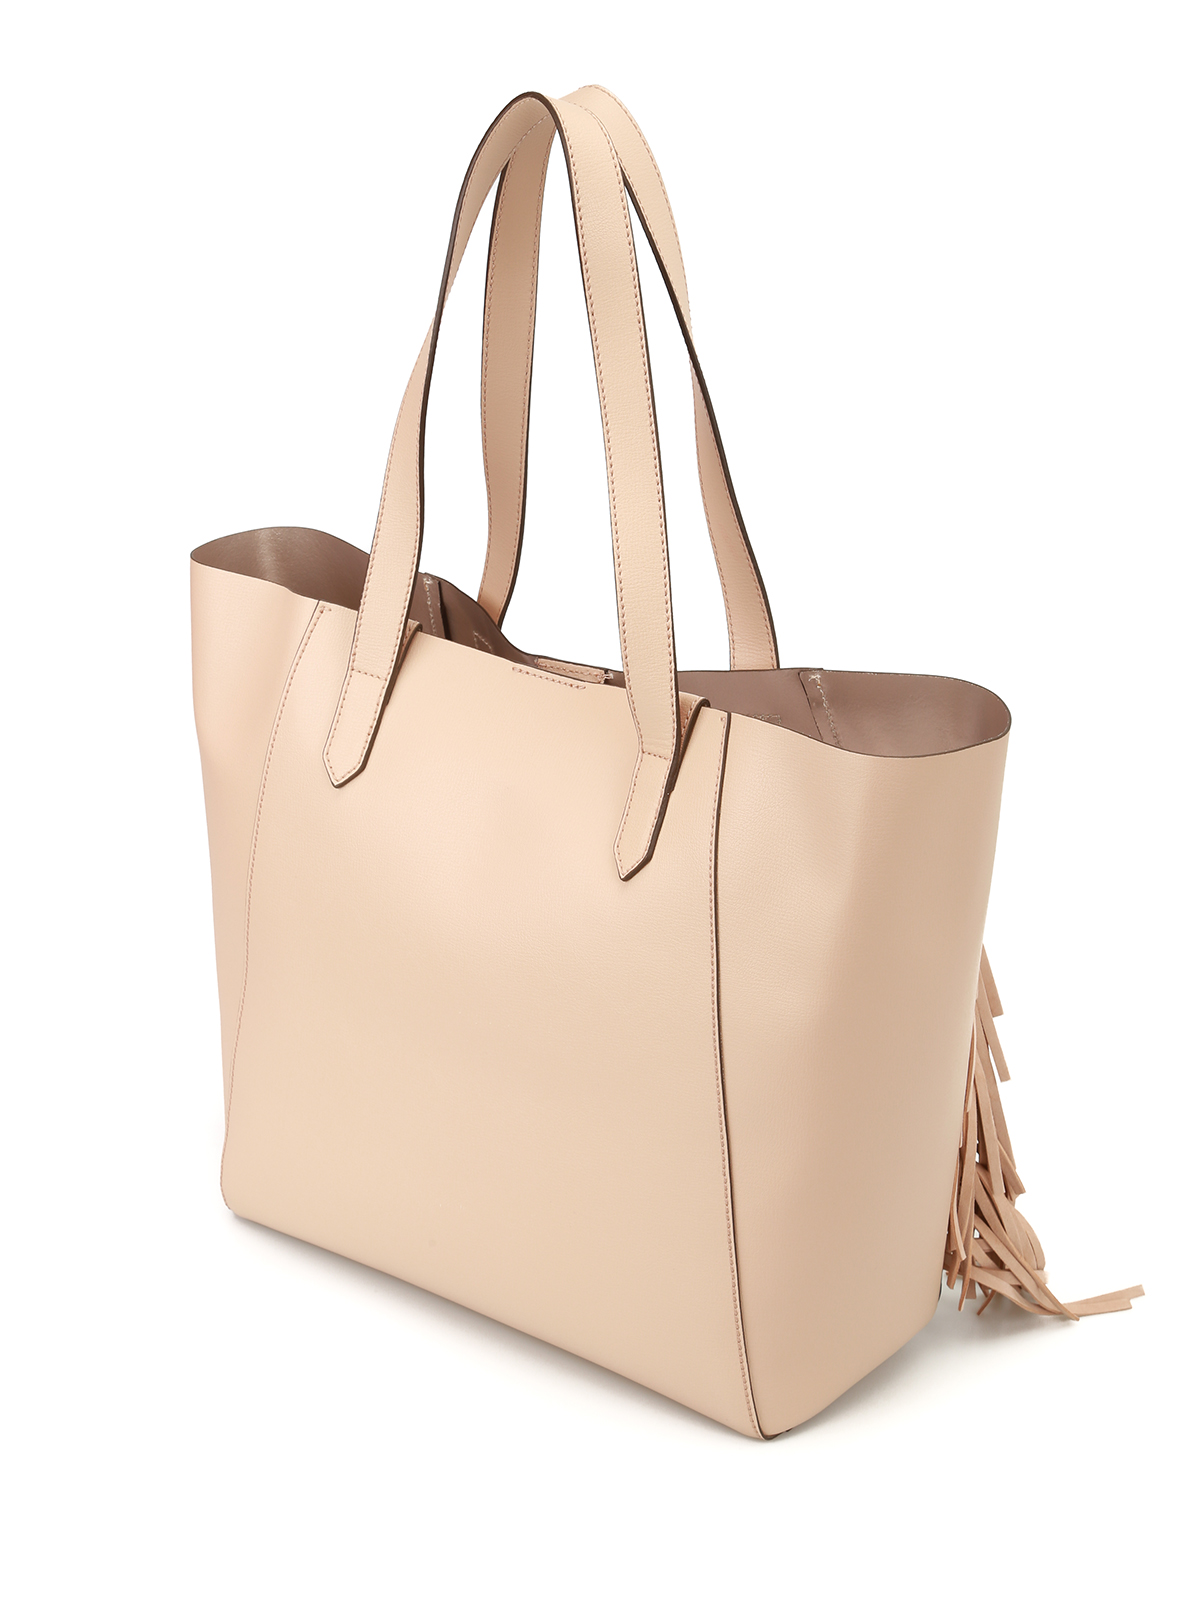 Hogan Leather tote with suede fringes HPcKOaaPKl